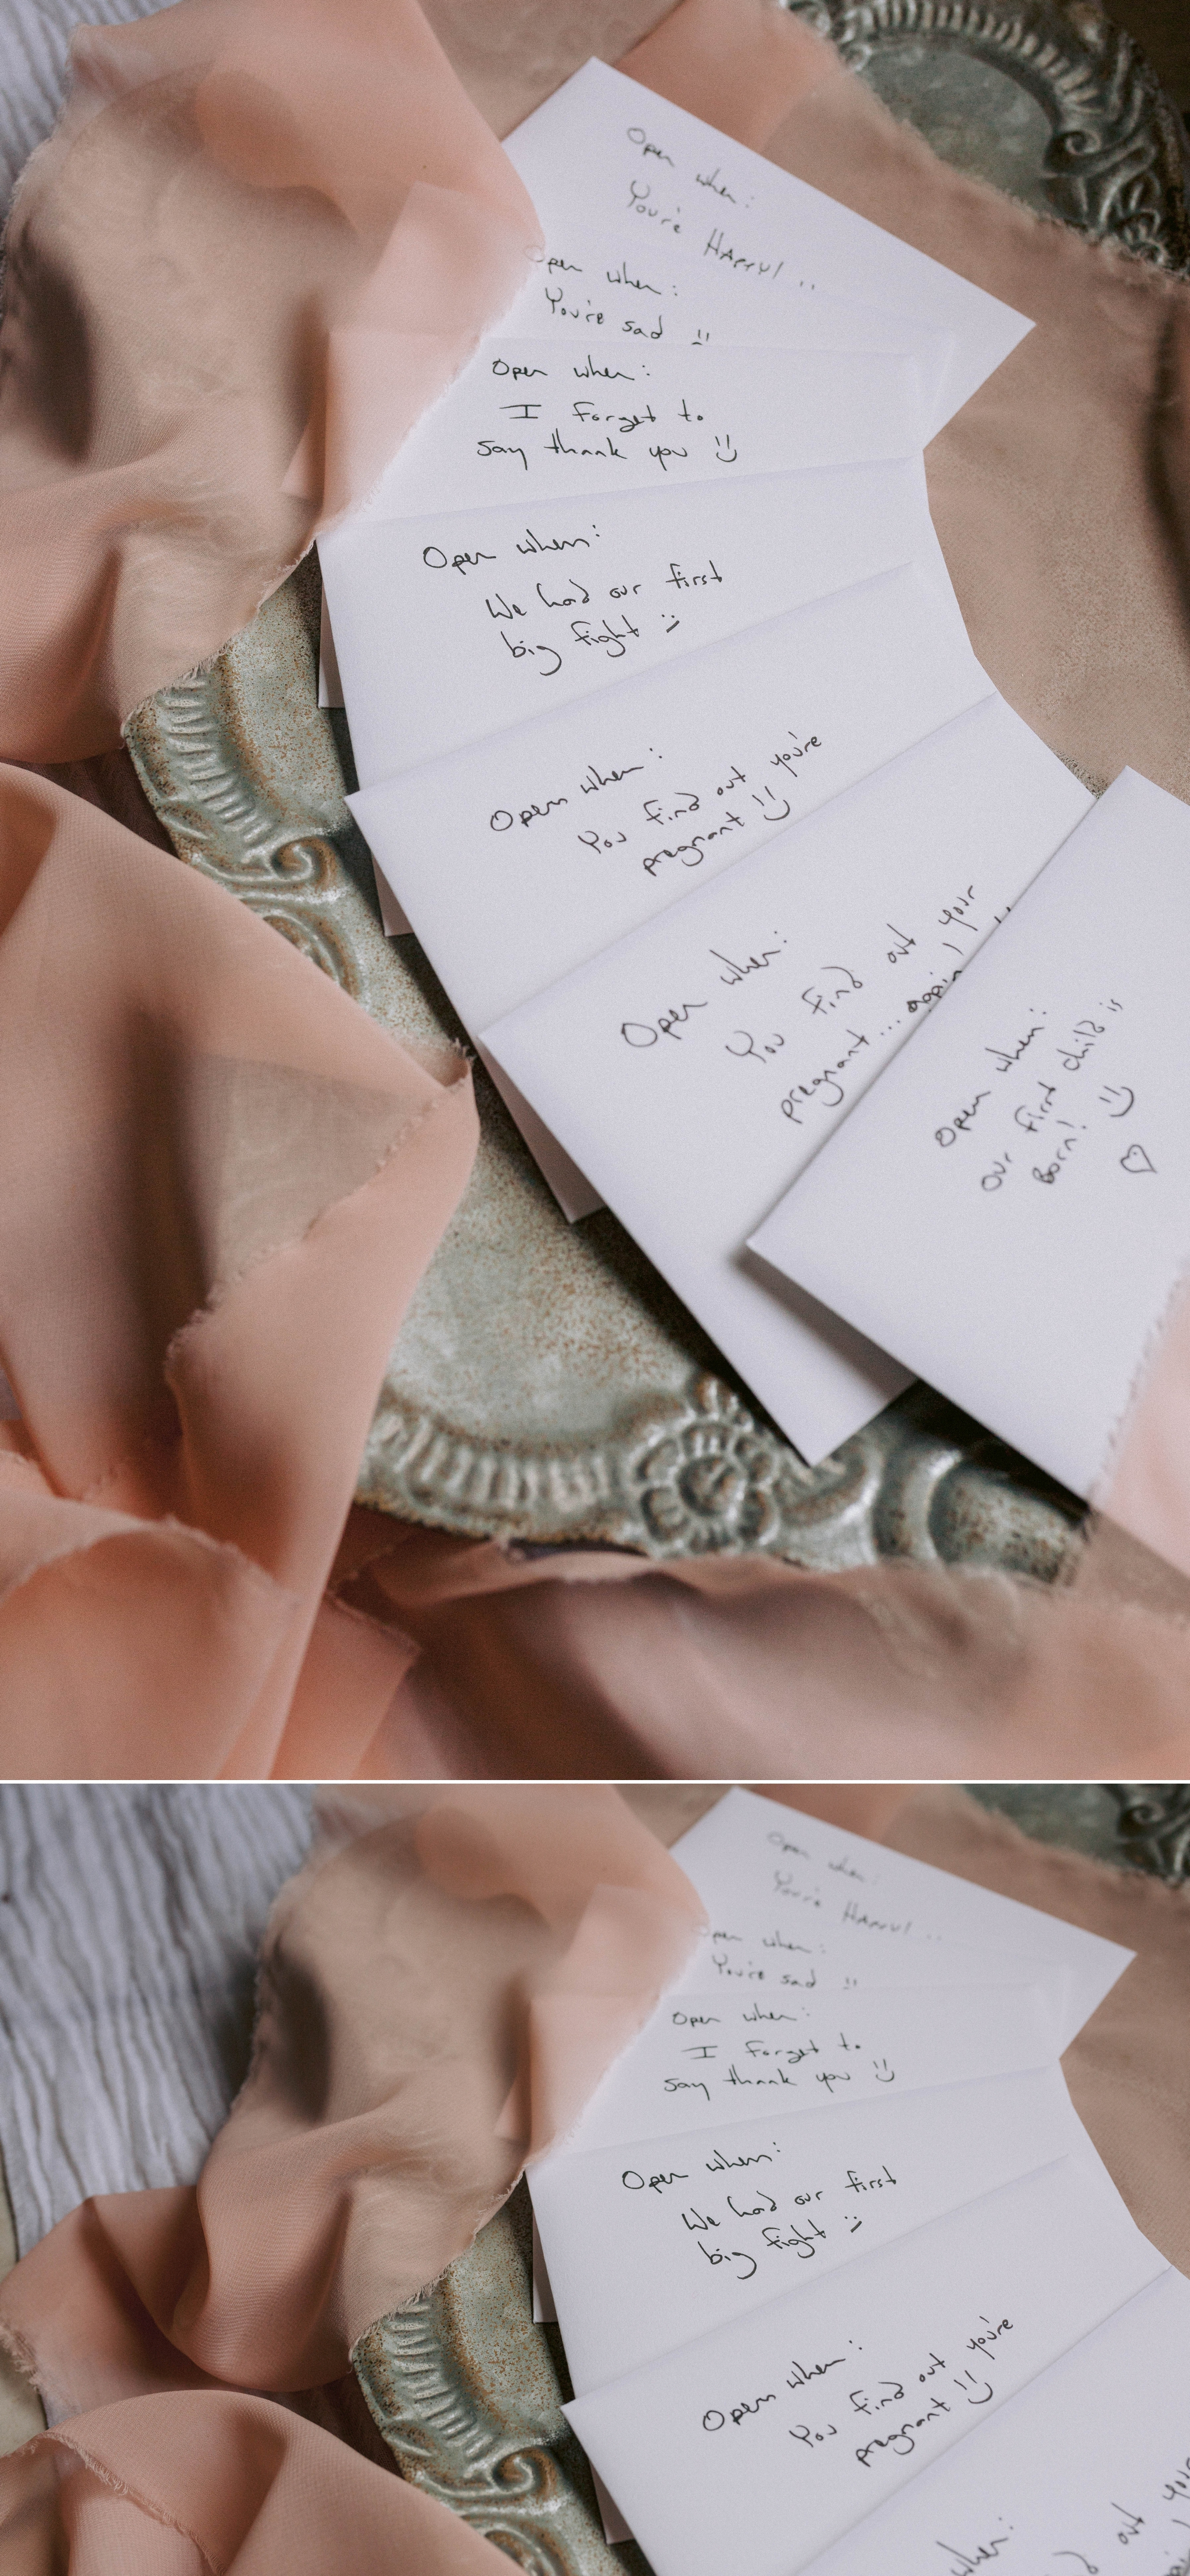 letters from the bride to the groom to read on different occasions as pre wedding gift - Honolulu Oahu Hawaii Wedding Photographer